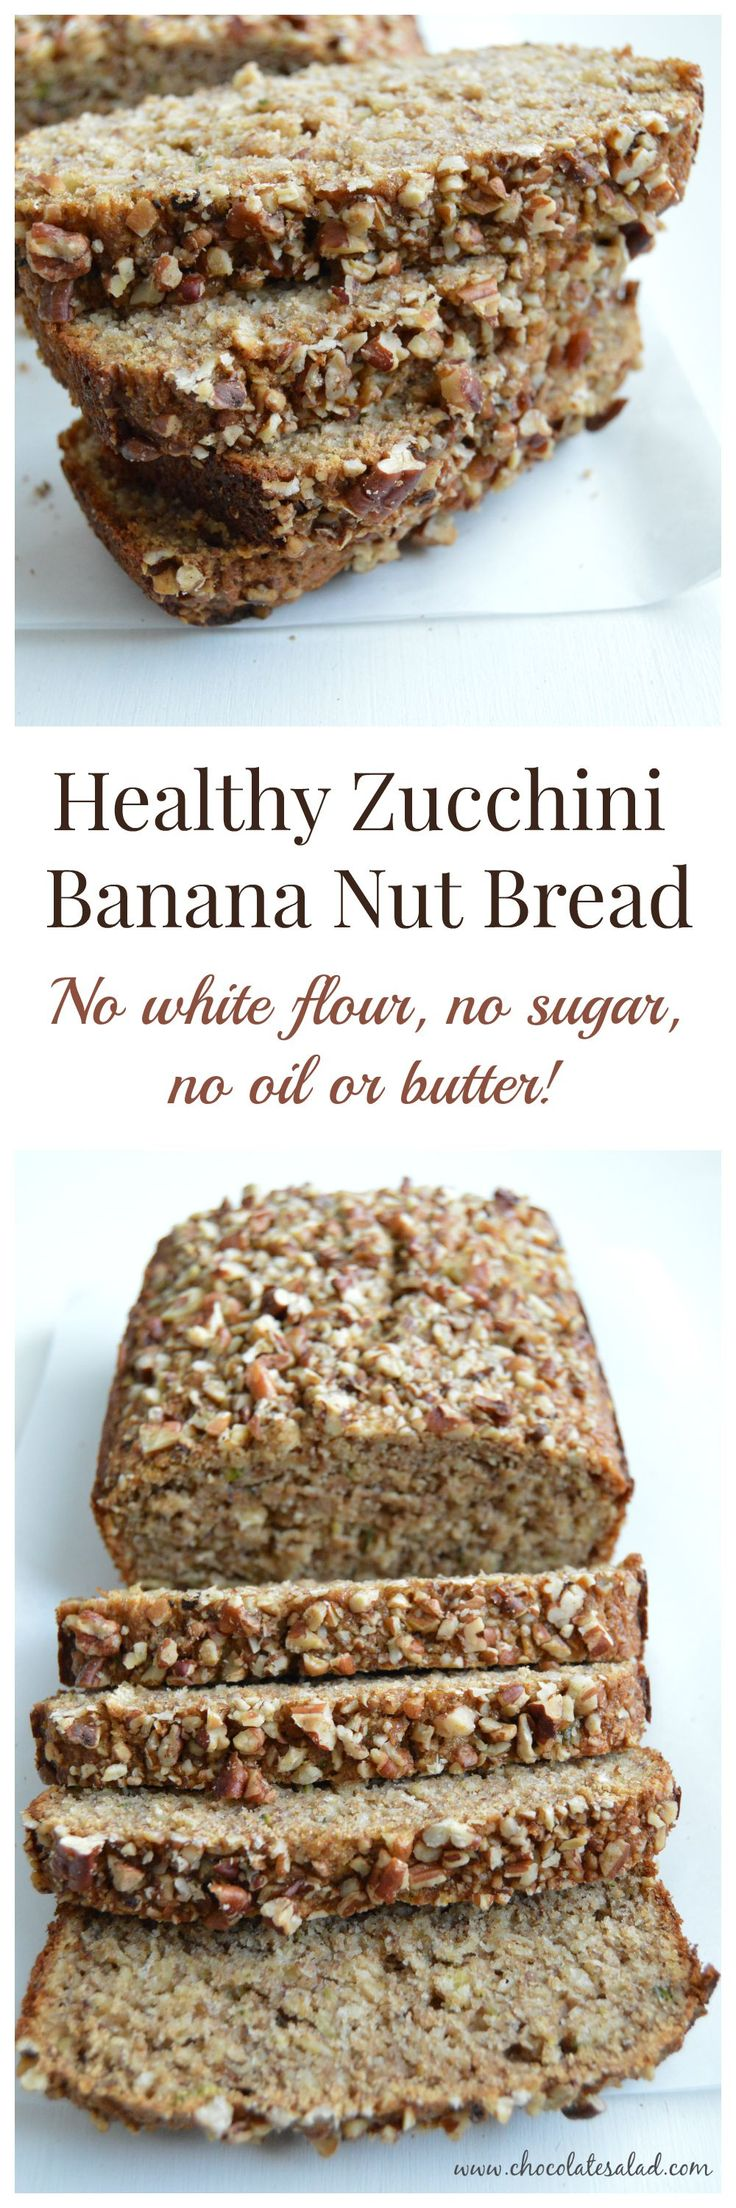 Under 100 calories per slice! Healthy Zucchini Banana Nut Bread on chocolatesalad.com